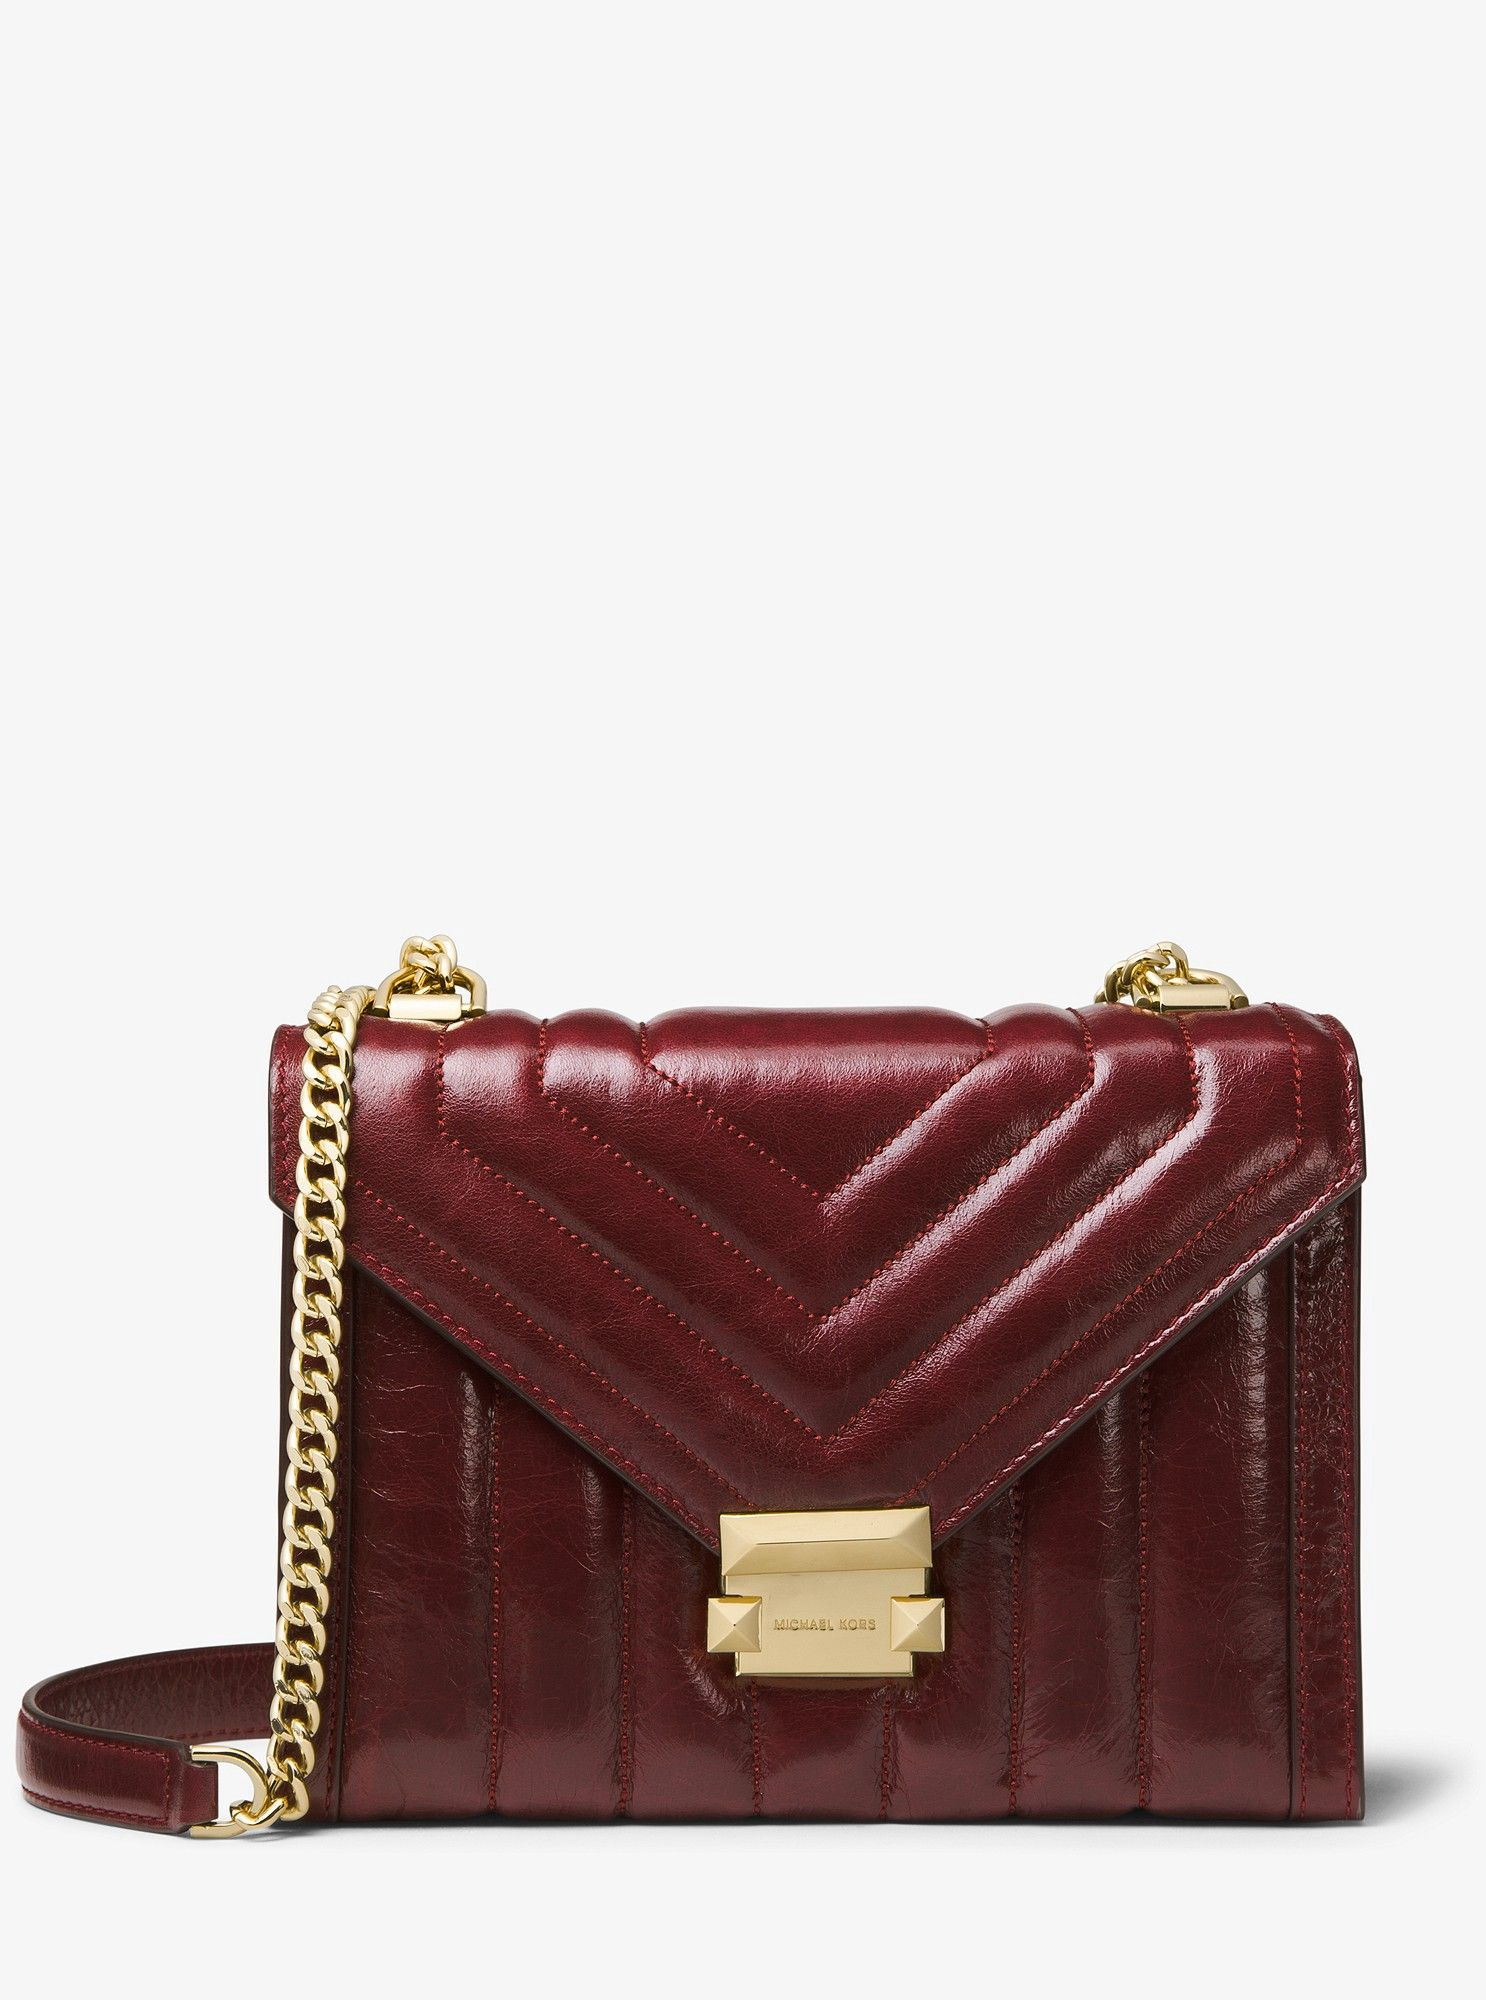 f17112fea2b8 Michael Kors Whitney Large Quilted Leather Convertible Shoulder Bag -  Oxblood